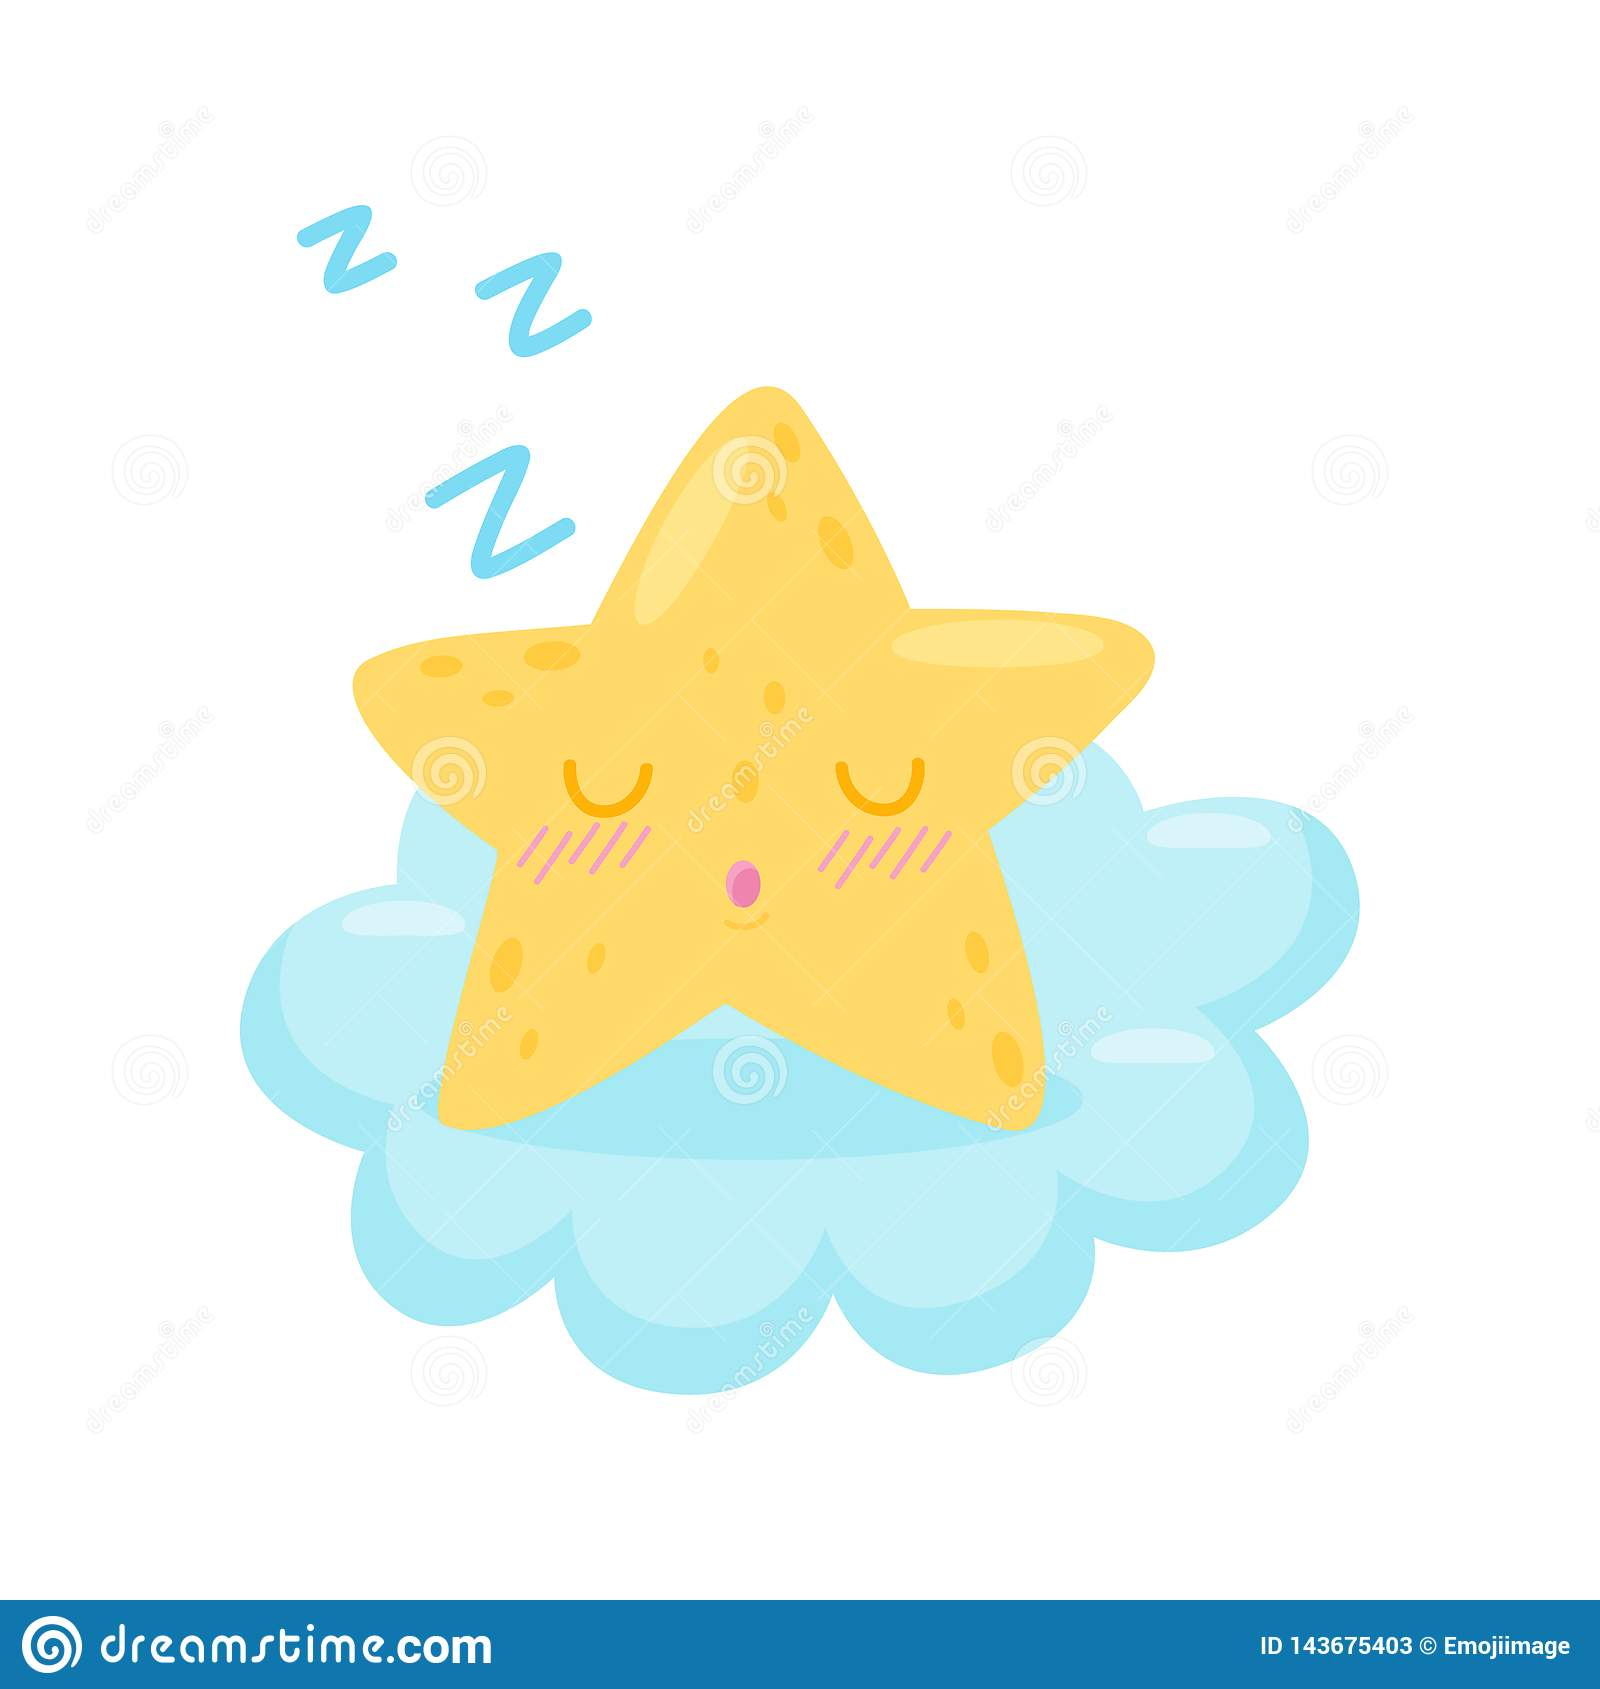 Star sleeping on cloud on white background.